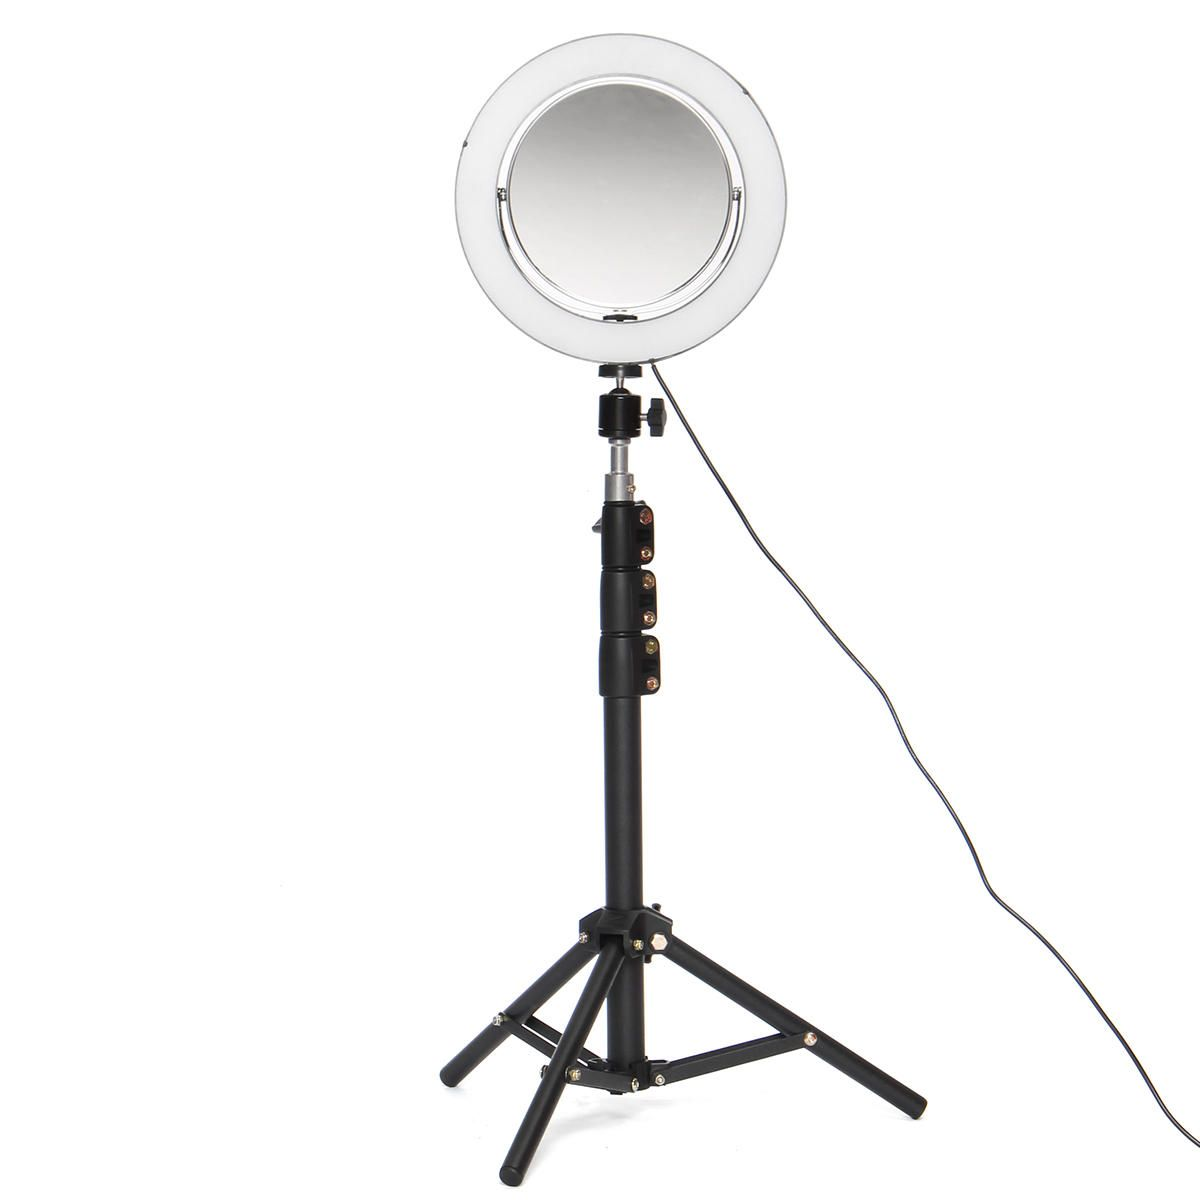 8.66 Live Stream Makeup Mirror Selfie LED Ring Light Fill in Light With Remote Control Cell Phone Holder